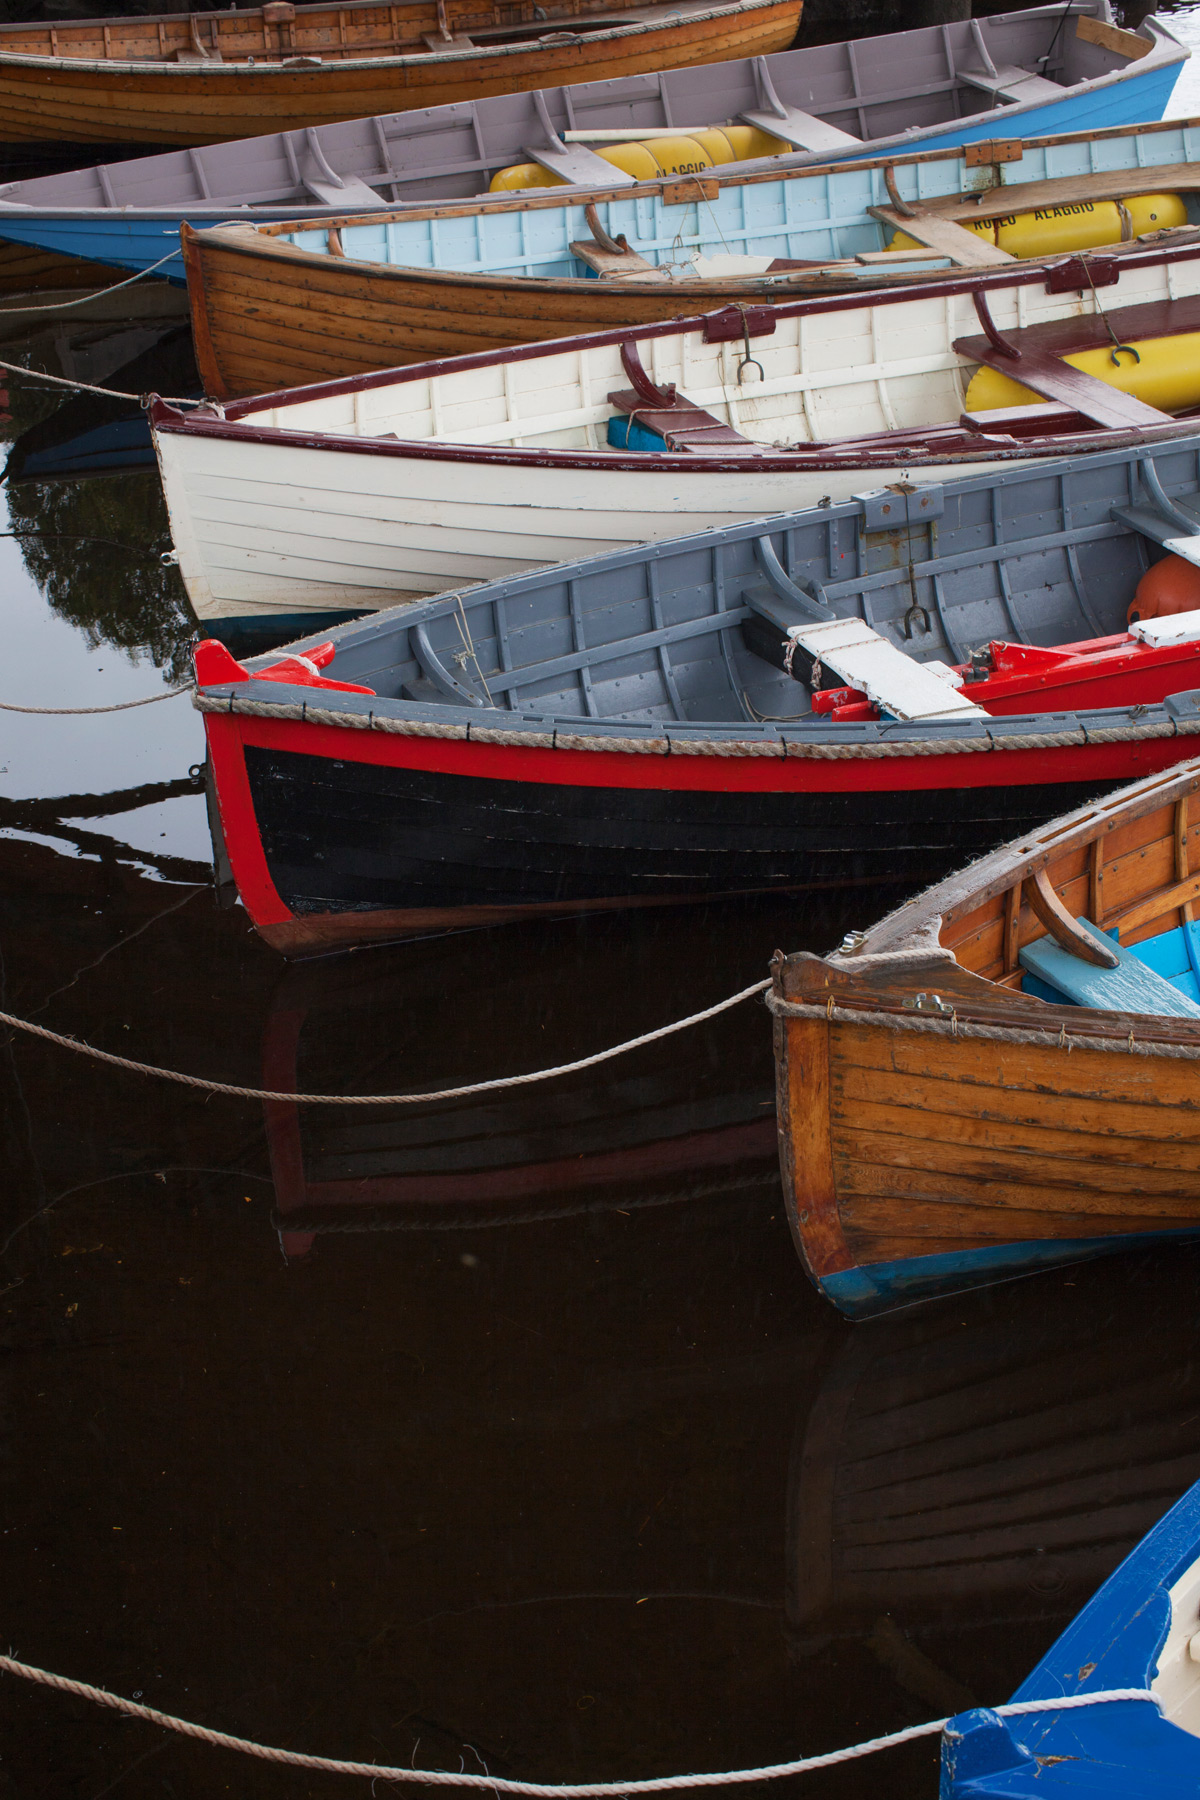 A row of coloured wooden boats on the water